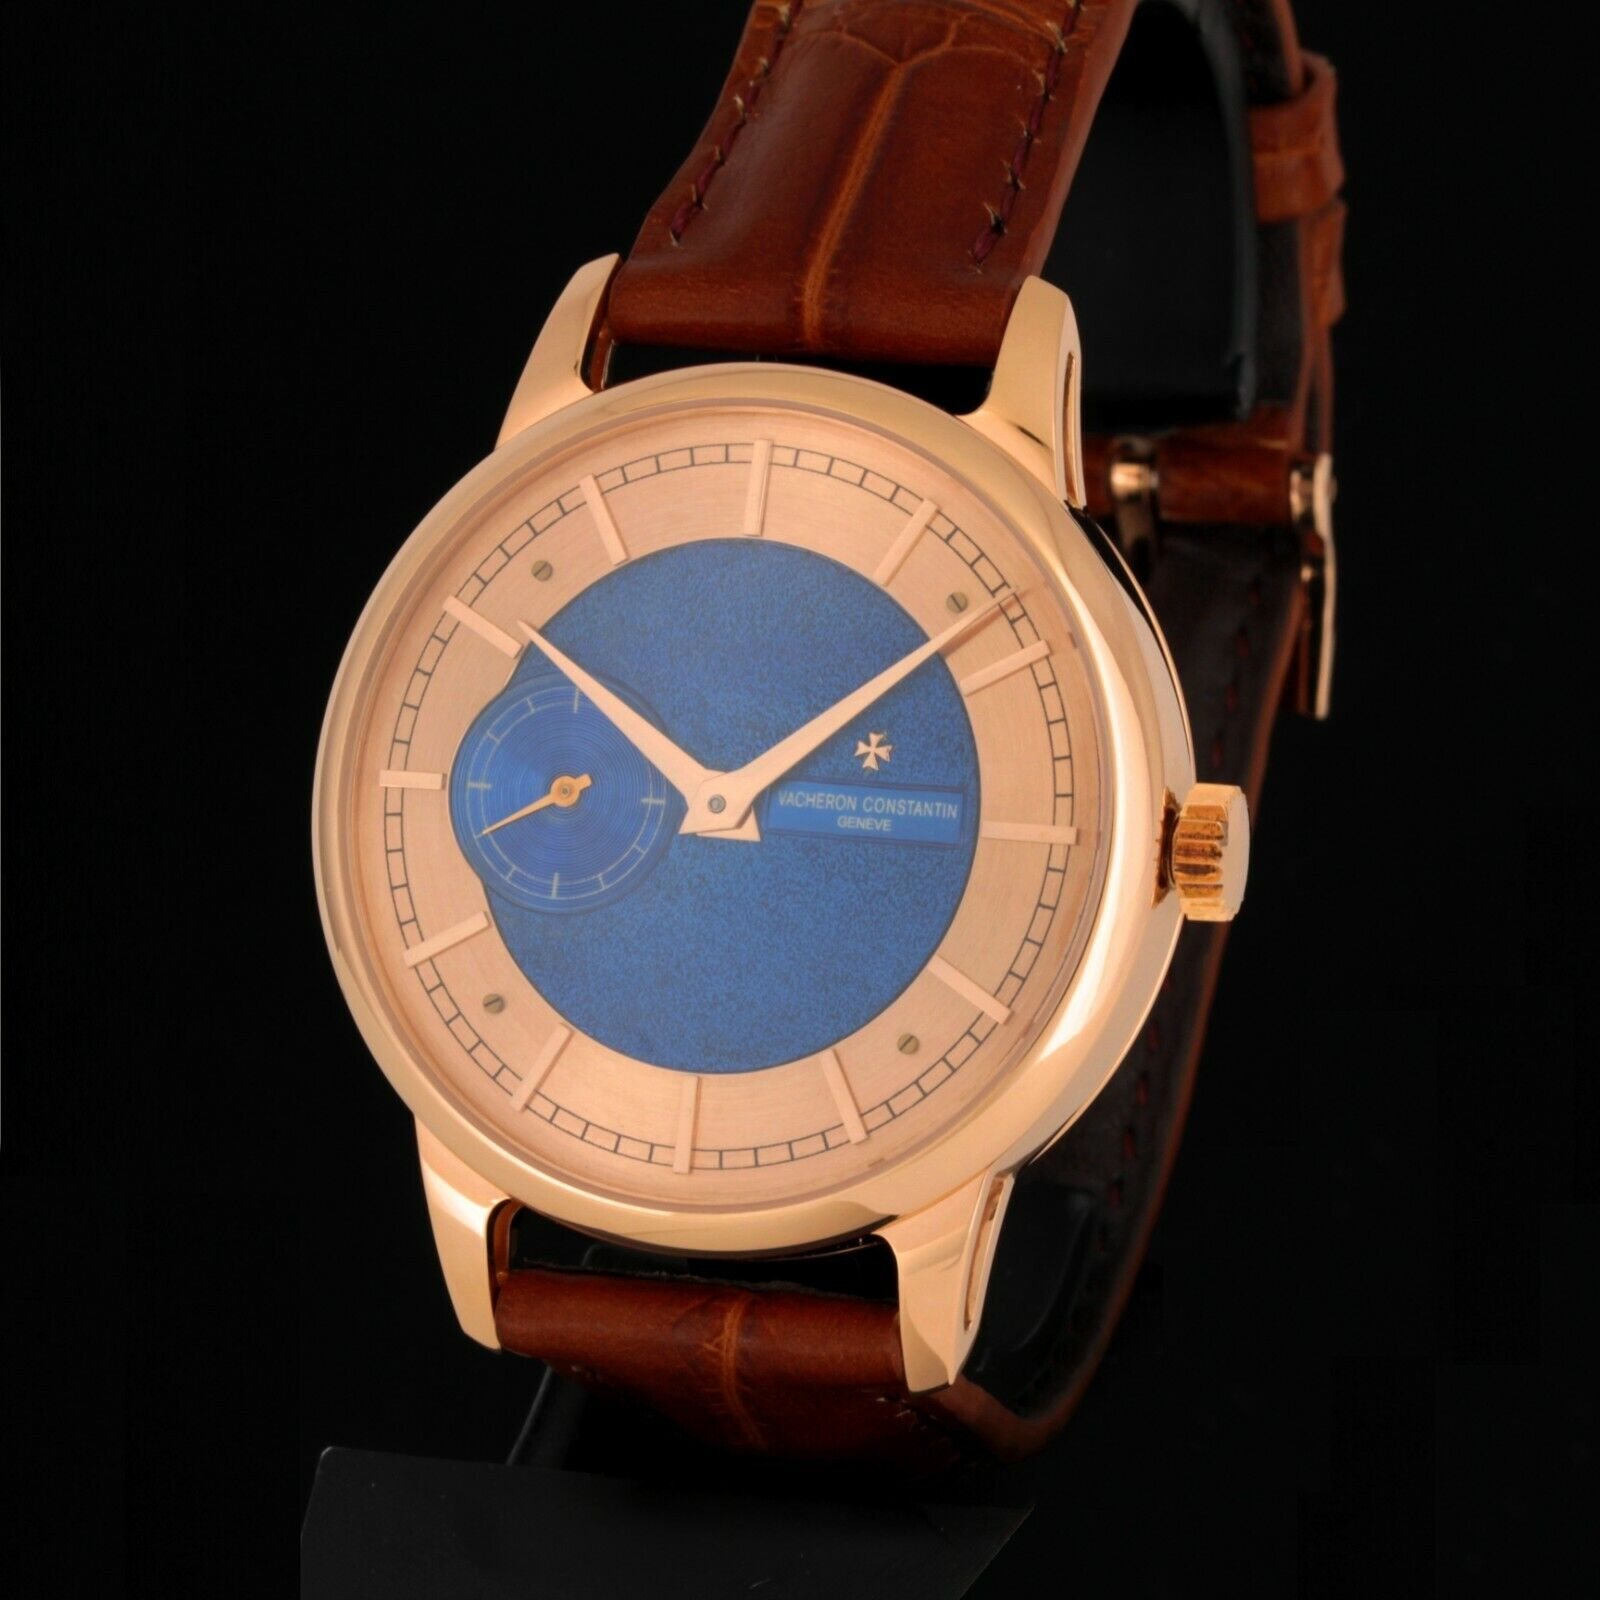 ANTIQUE VACHERON CONSTANTIN HIGH GRADE 15 JEWELS WATCH MOV, 14K SOLID GOLD CASE - watch picture 1